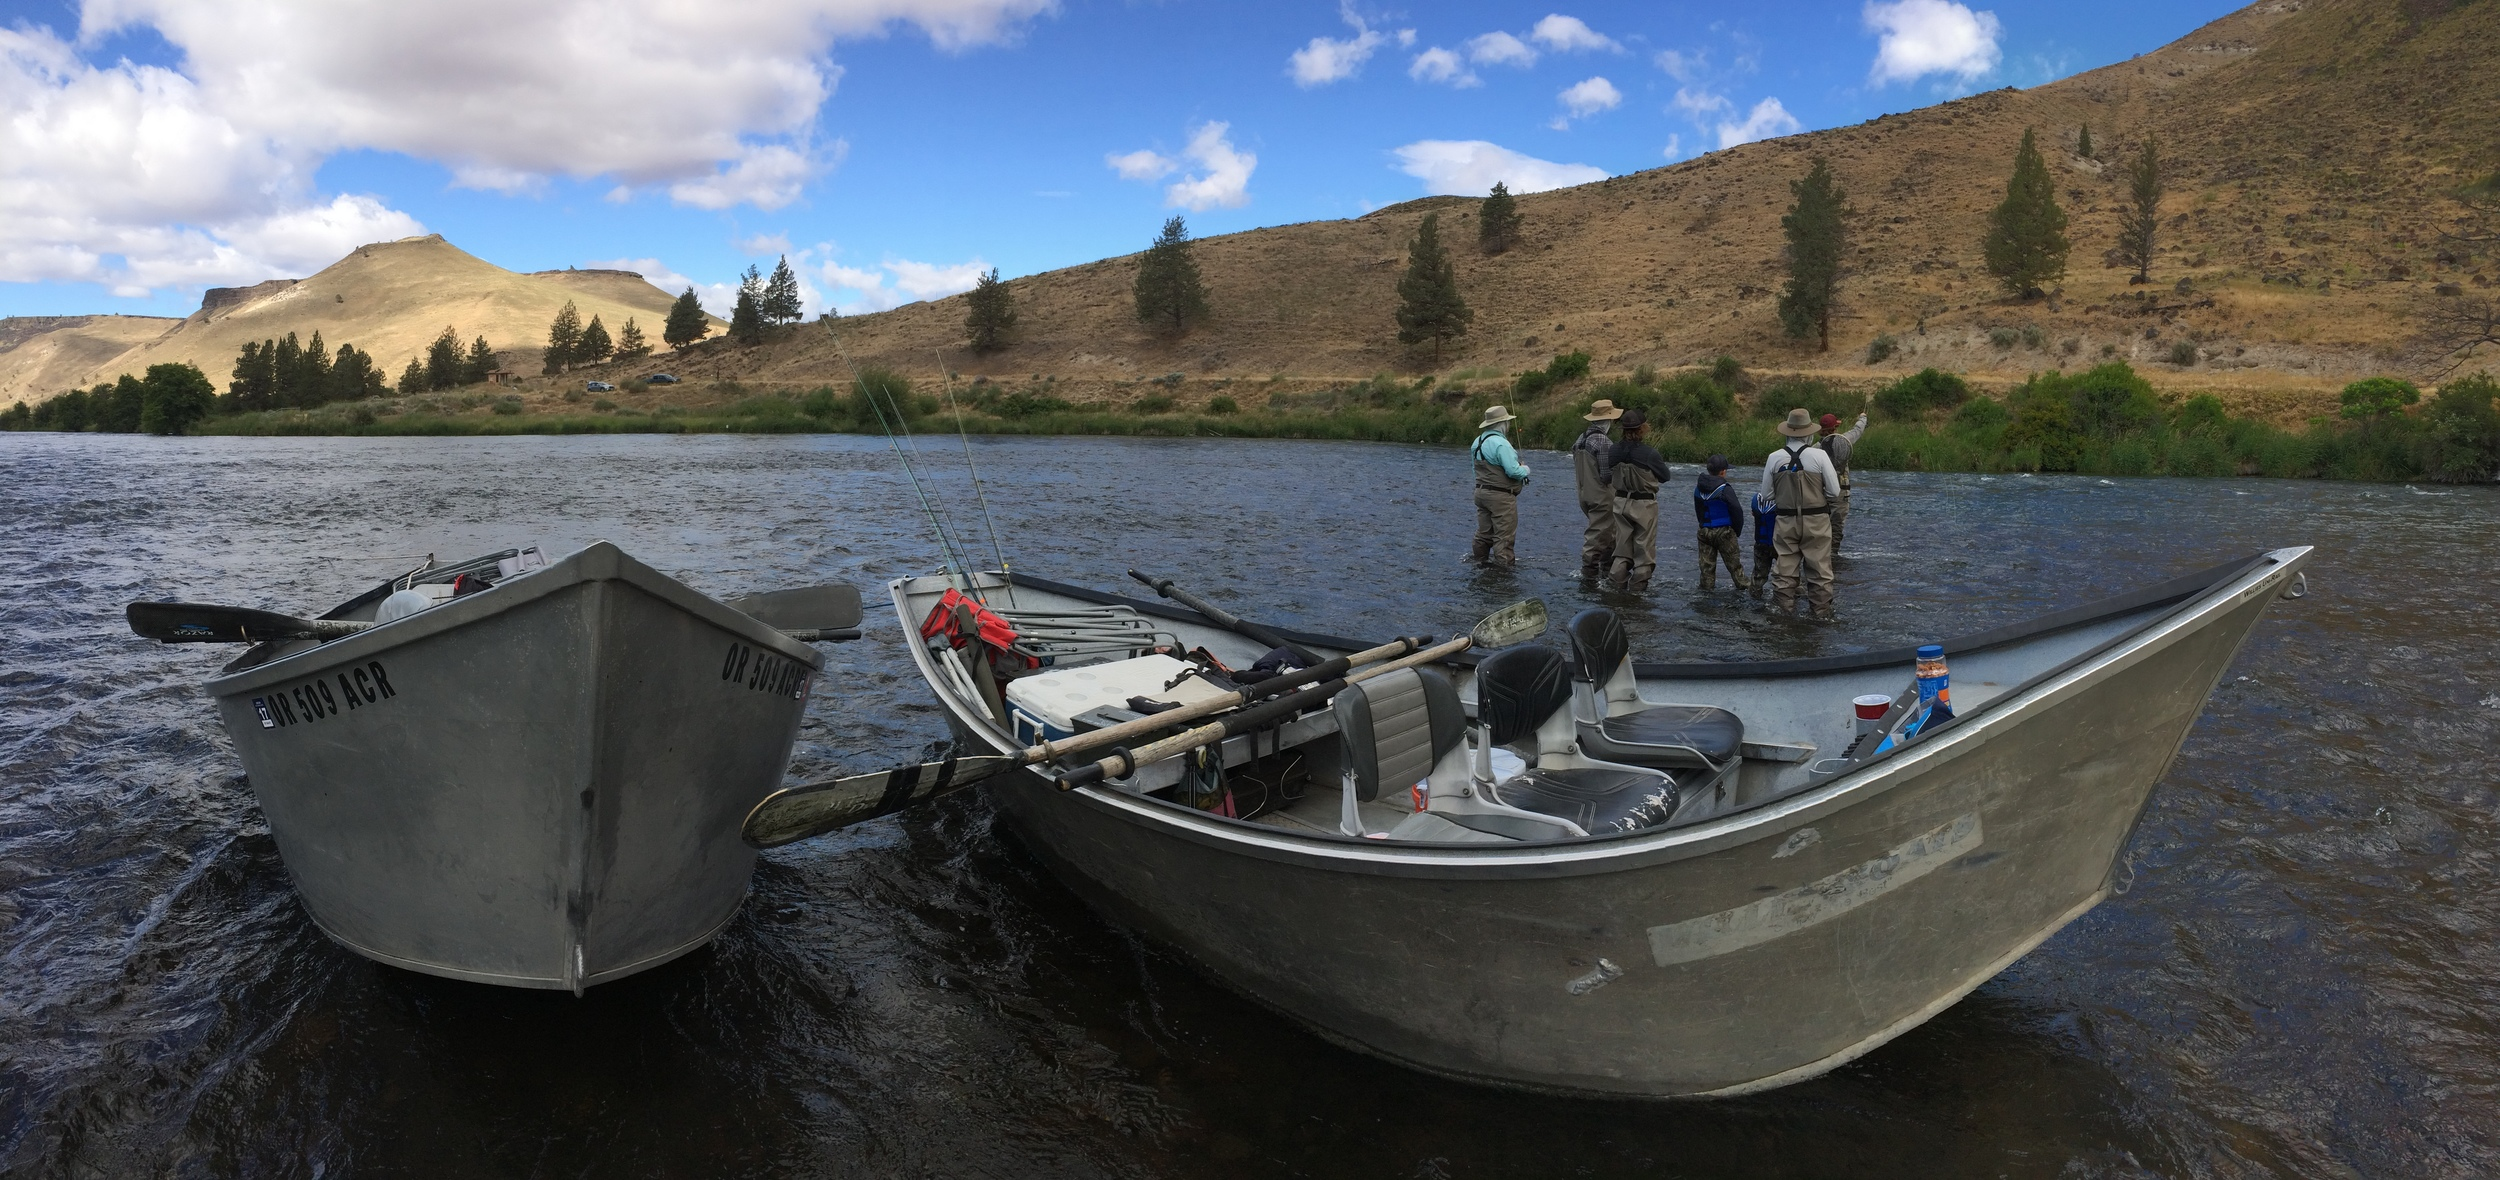 fly fishing lessons on the Deschutes River near Bend